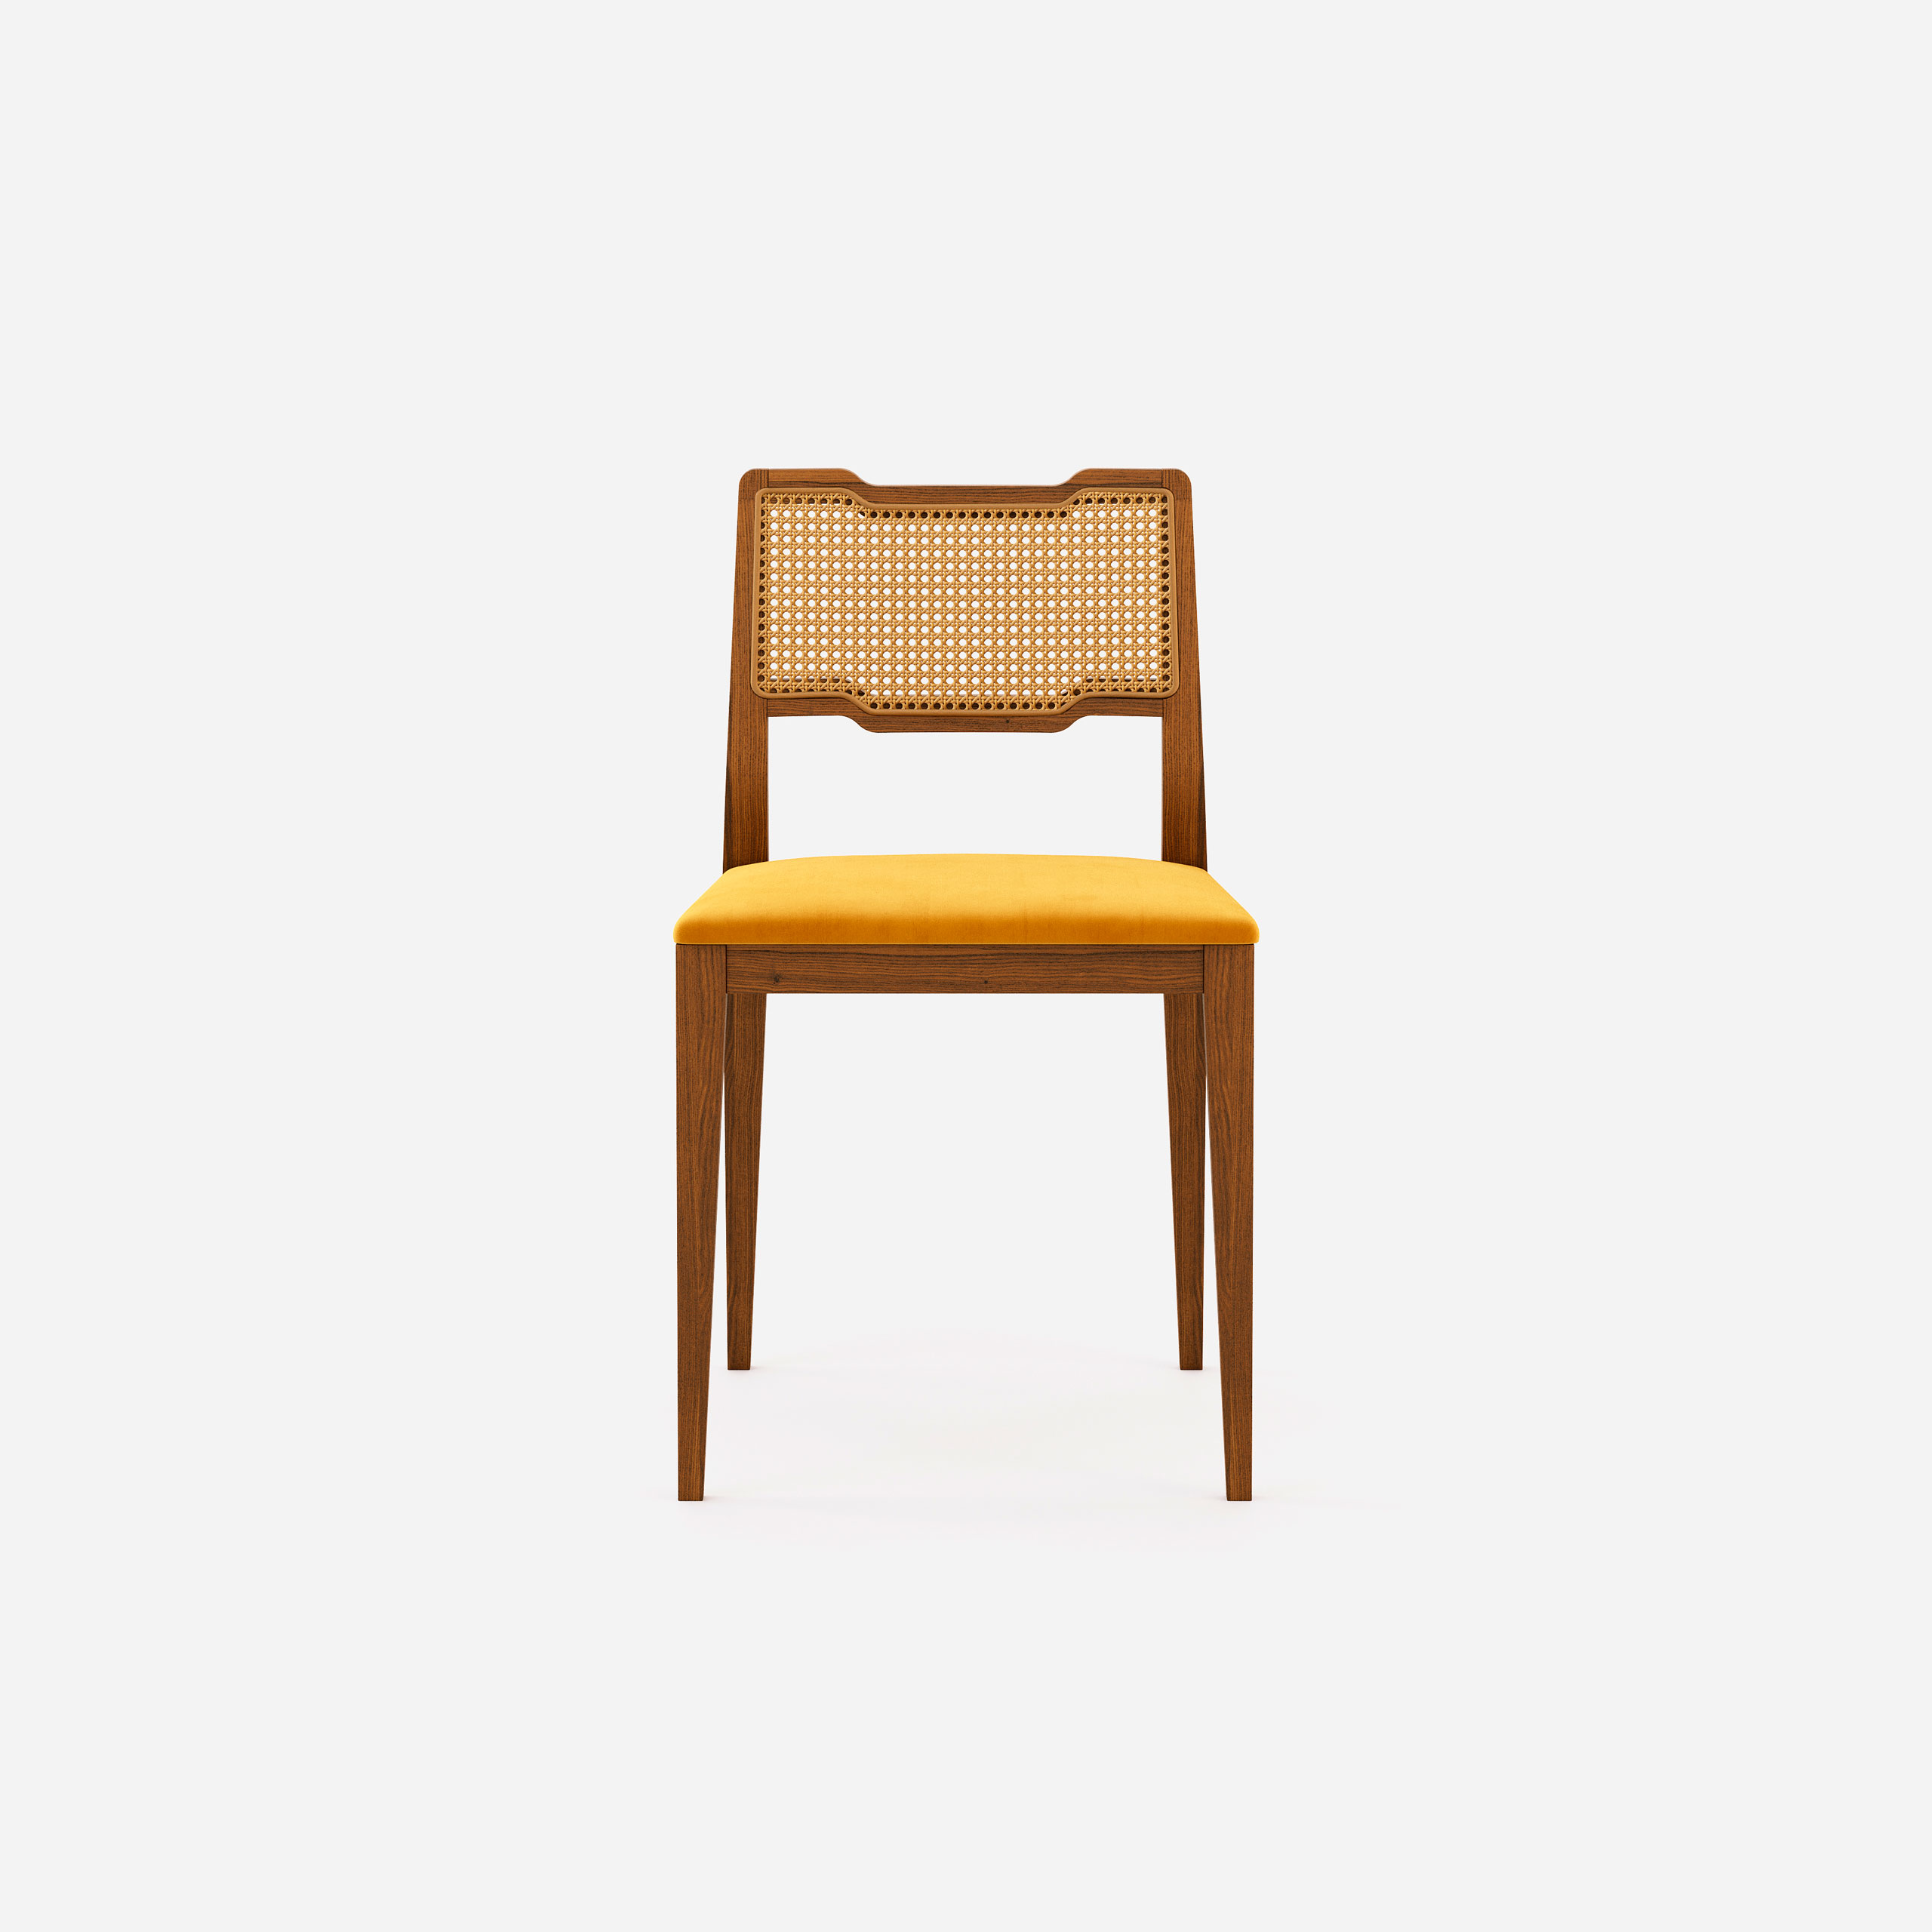 eva-chair-domkapa-new-collection-0